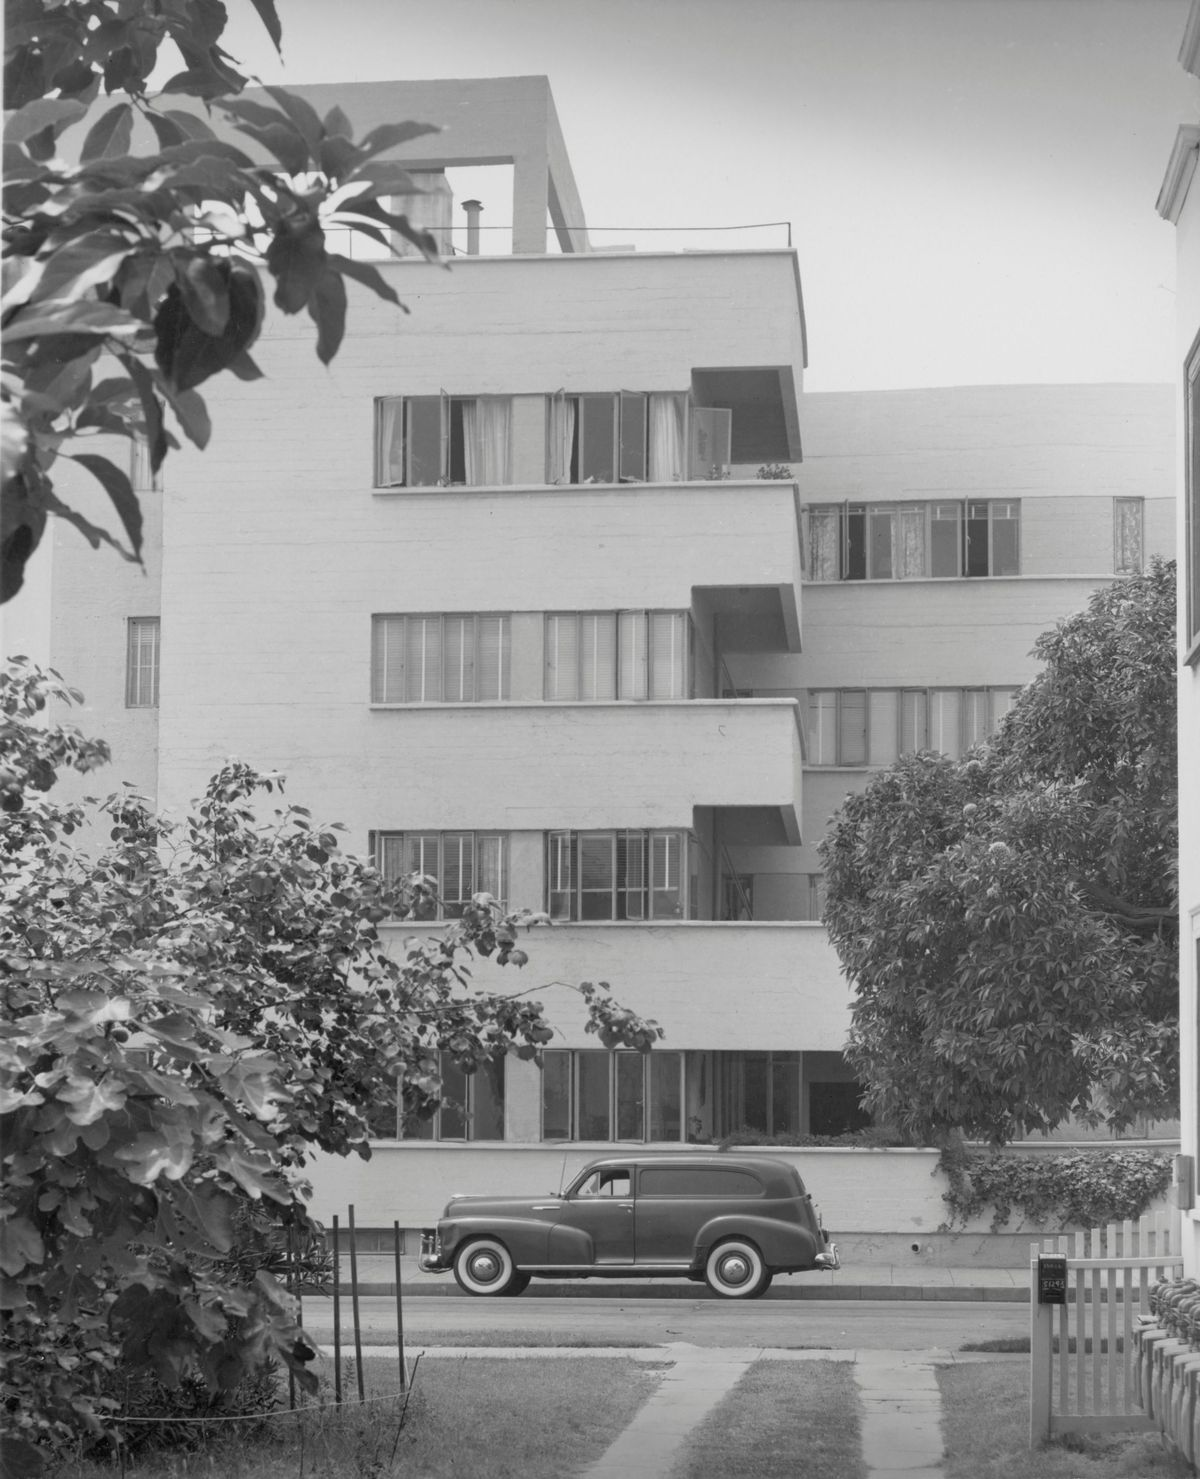 A black and white photo of the four-story landmarked apartment building.